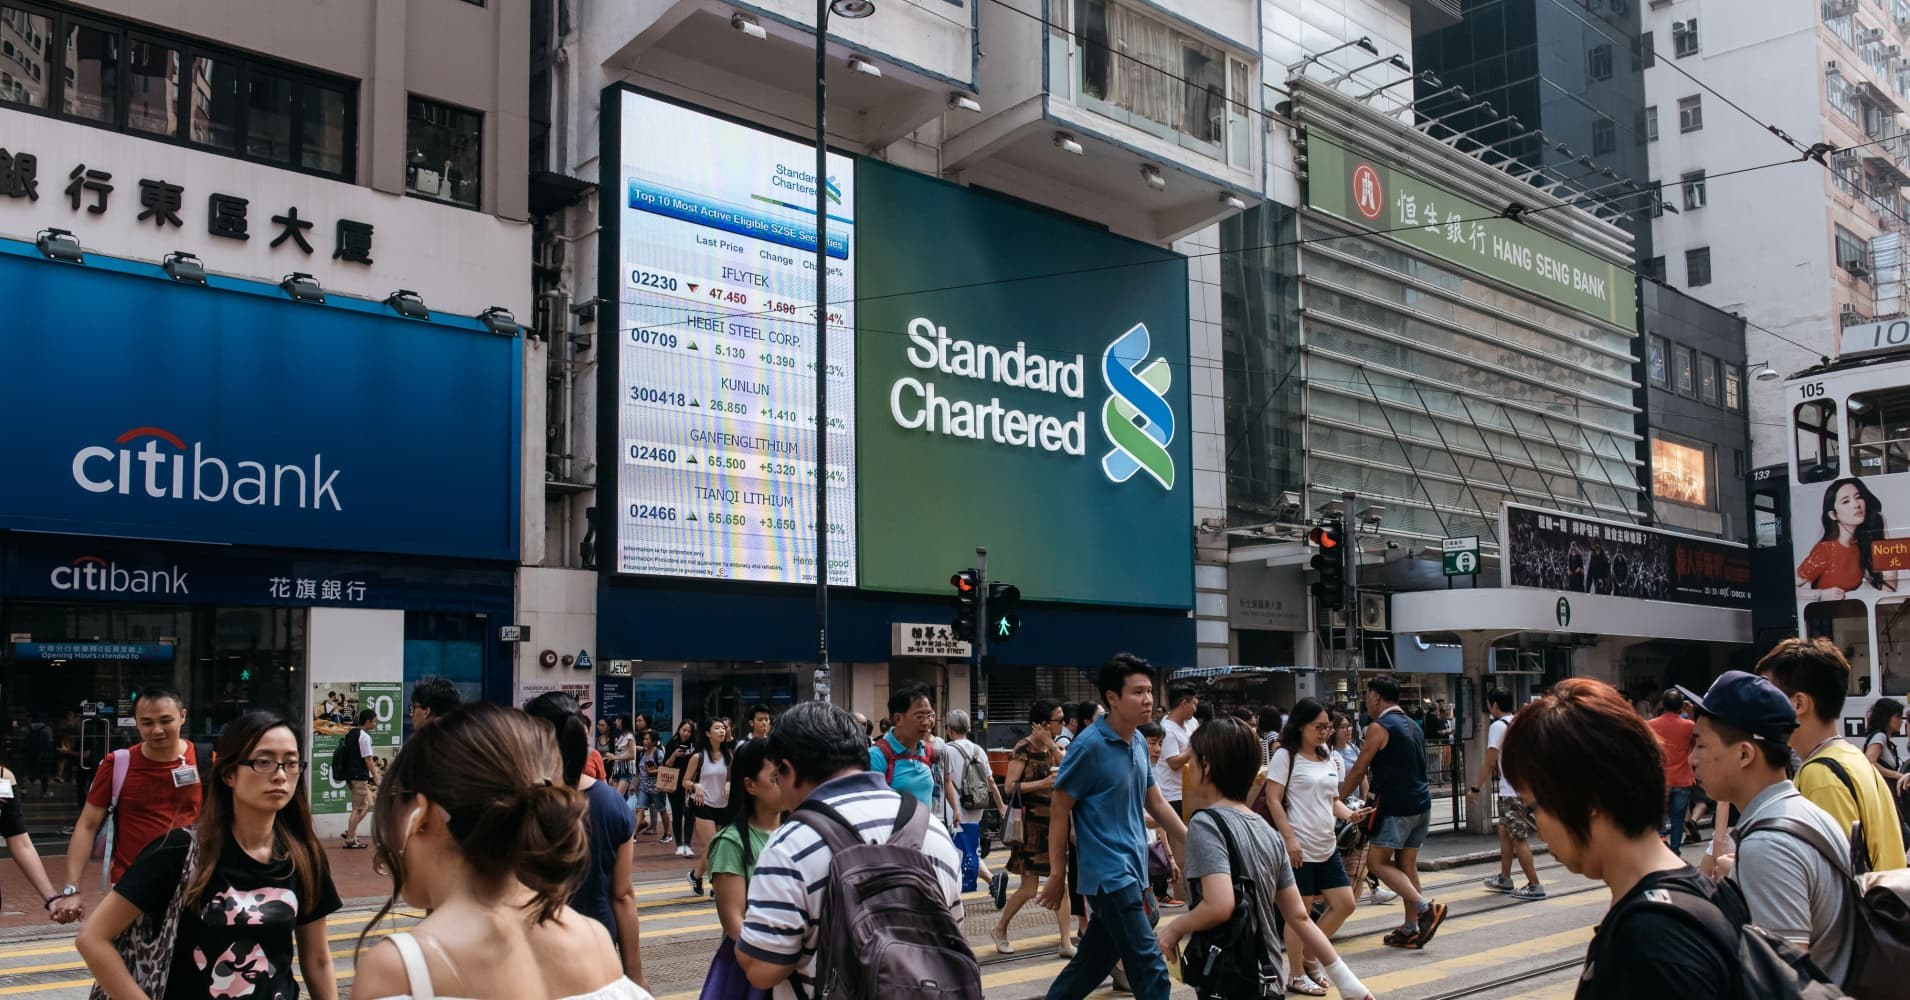 One of the world's major financial centers is about to shake up its banking sector